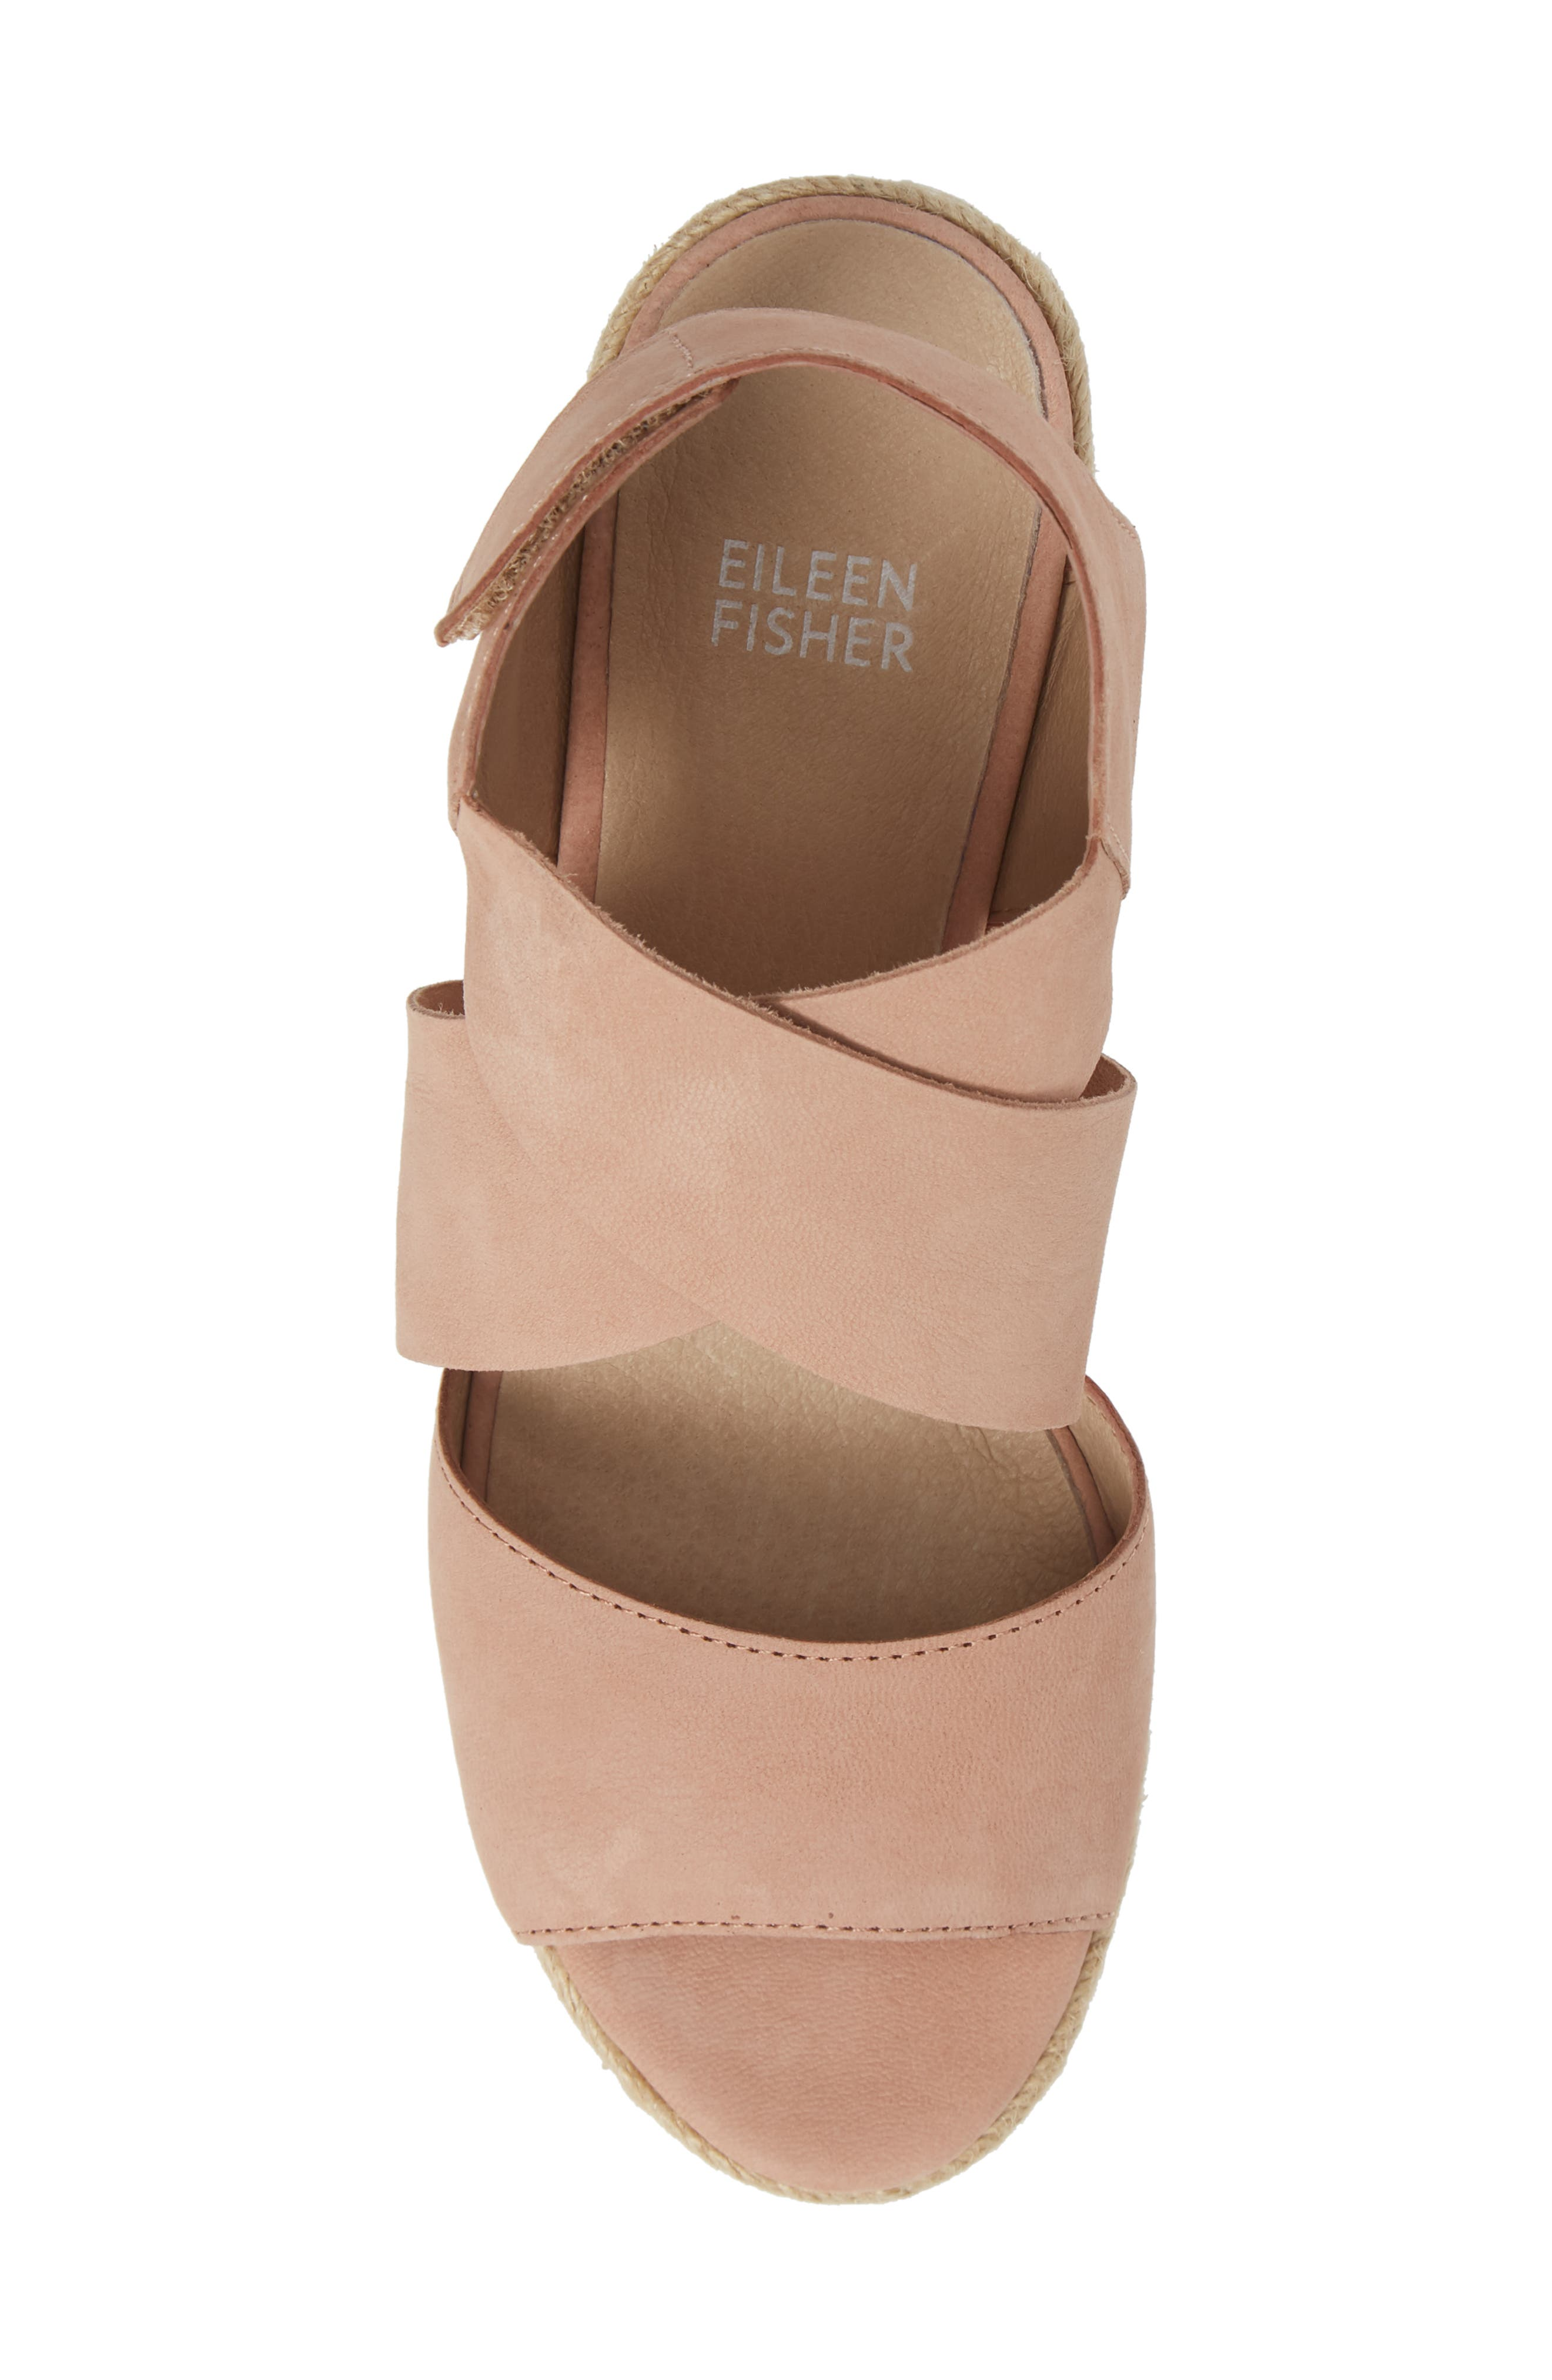 'Willow' Espadrille Wedge Sandal,                             Alternate thumbnail 5, color,                             TOFFEE CREAM NUBUCK